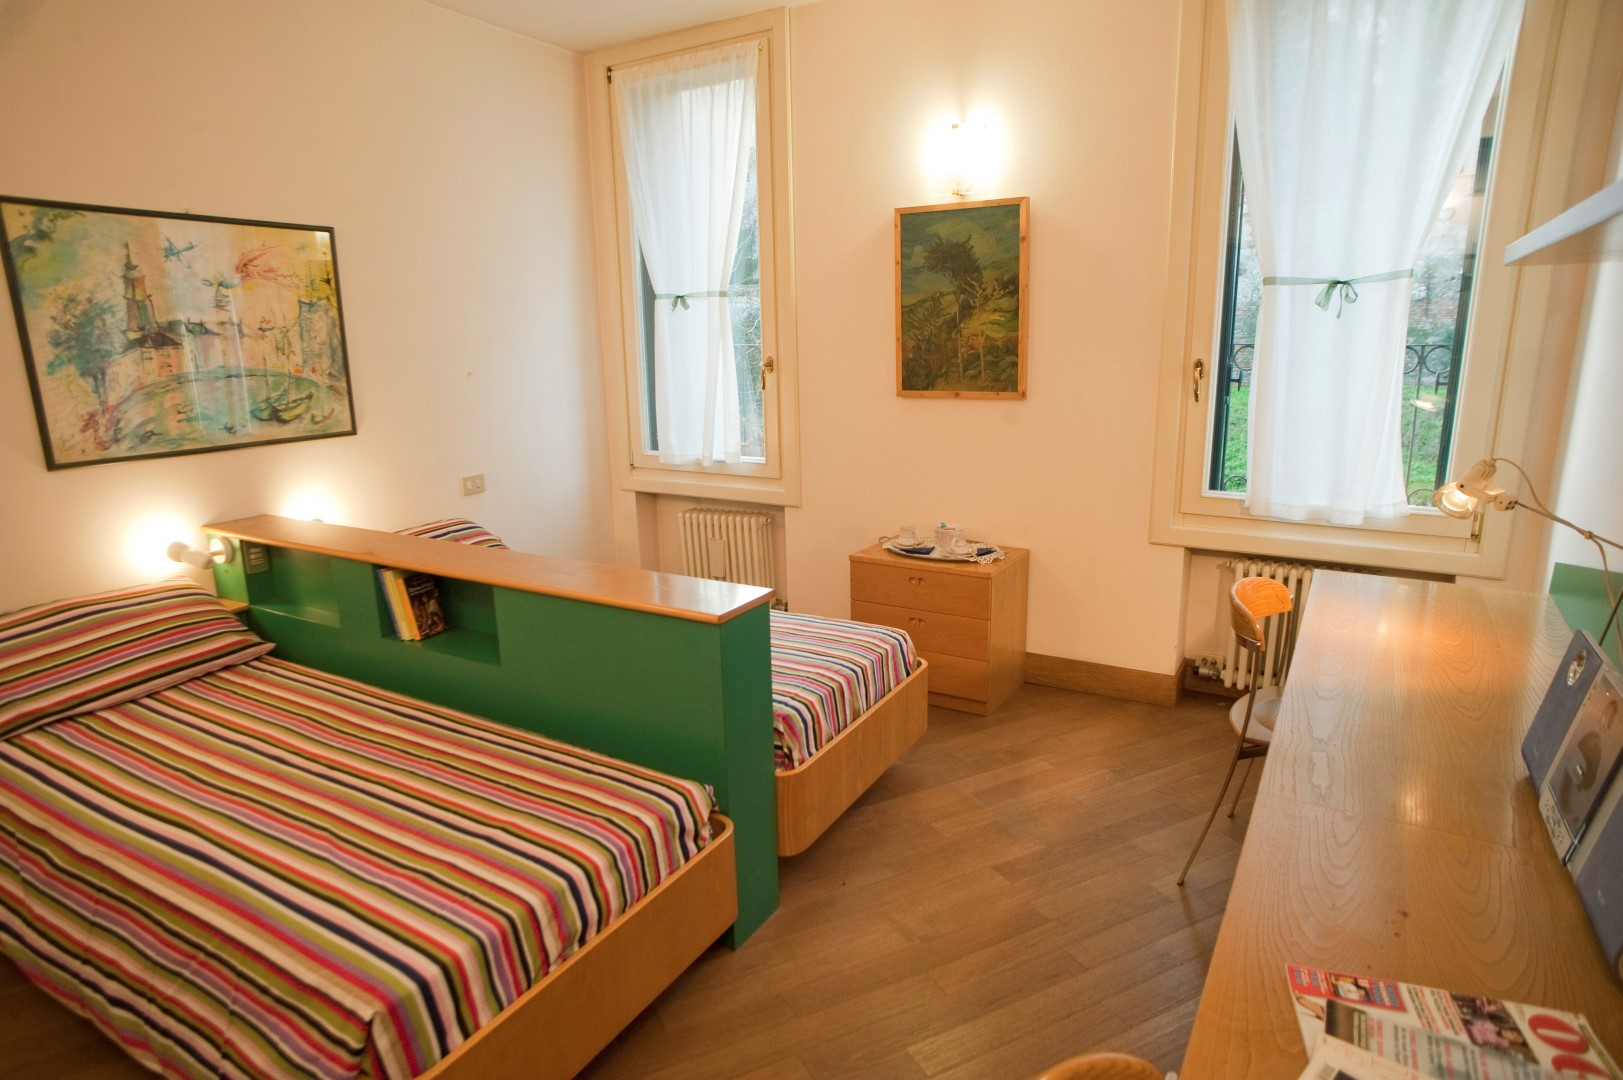 B&b al ponte Vicenza Camera doppia 1492